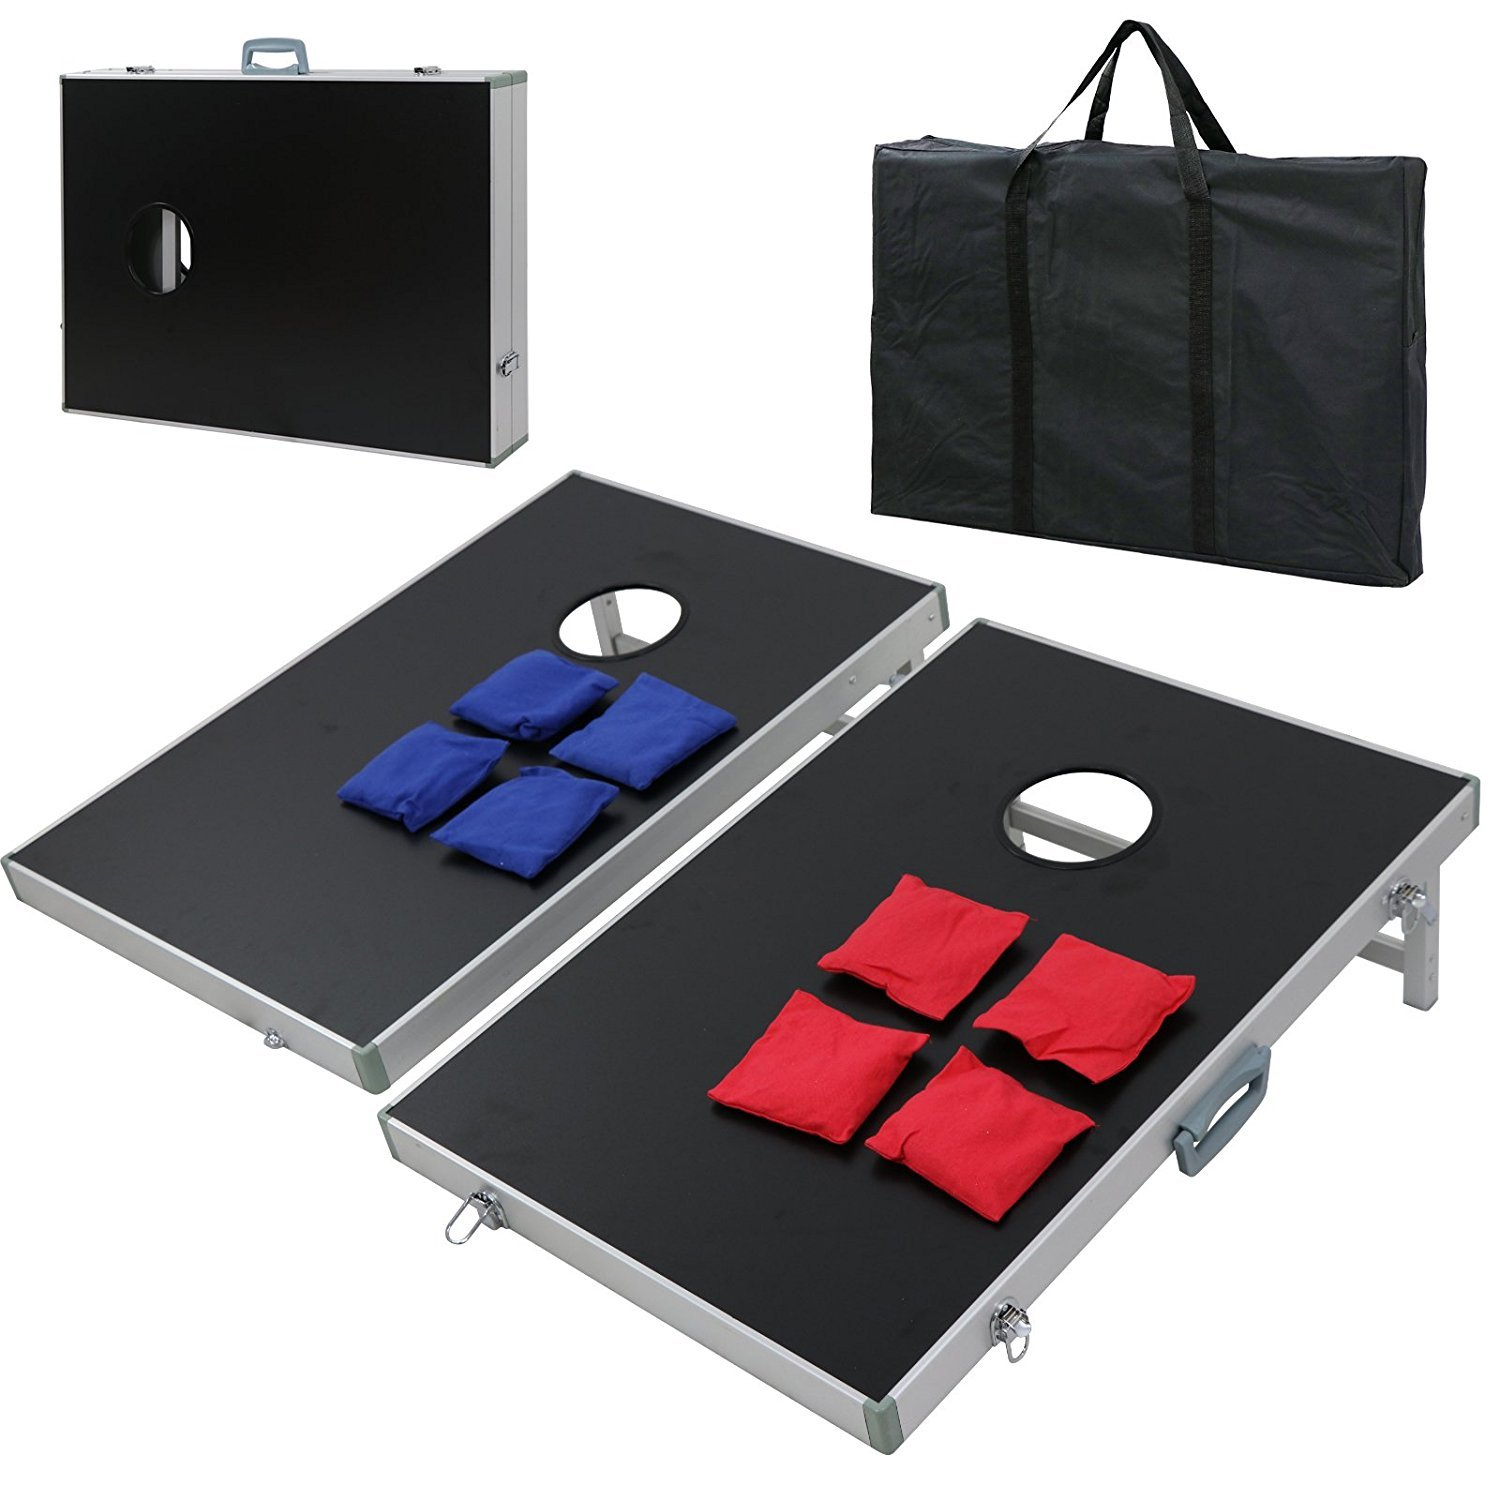 ZENY 3' x 2' Cornhole Bean Bag Toss Game Set with Carrying Case Aluminum Lightweight Corn Hole Board by ZENY (Image #1)